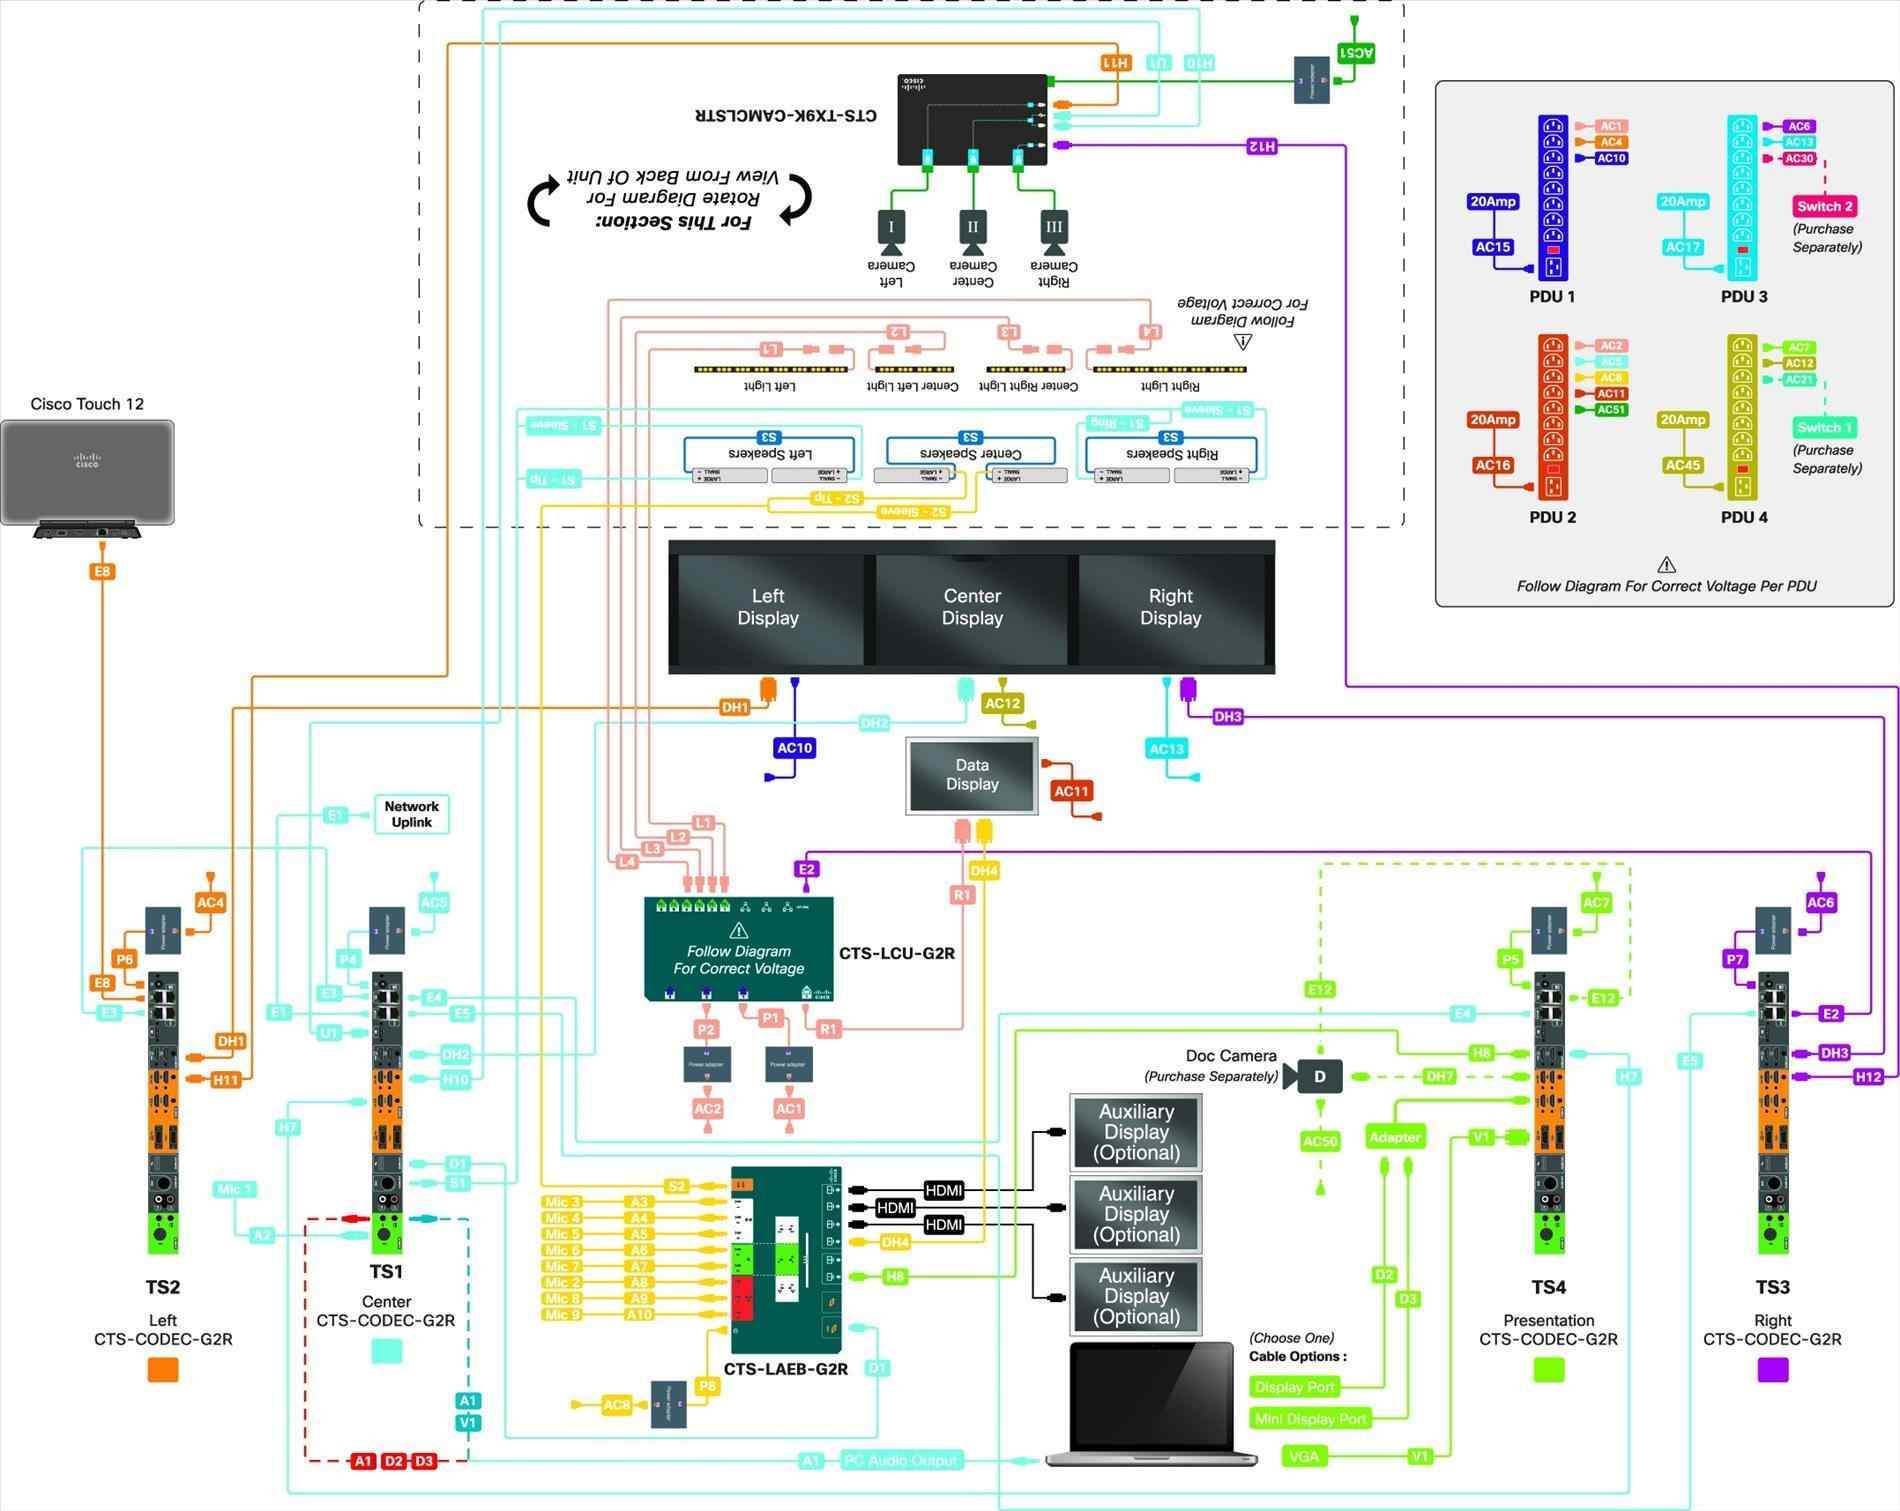 Flash Drive Wiring Diagram | Wiring Library - Wiring Diagram For Usb Flashdrive